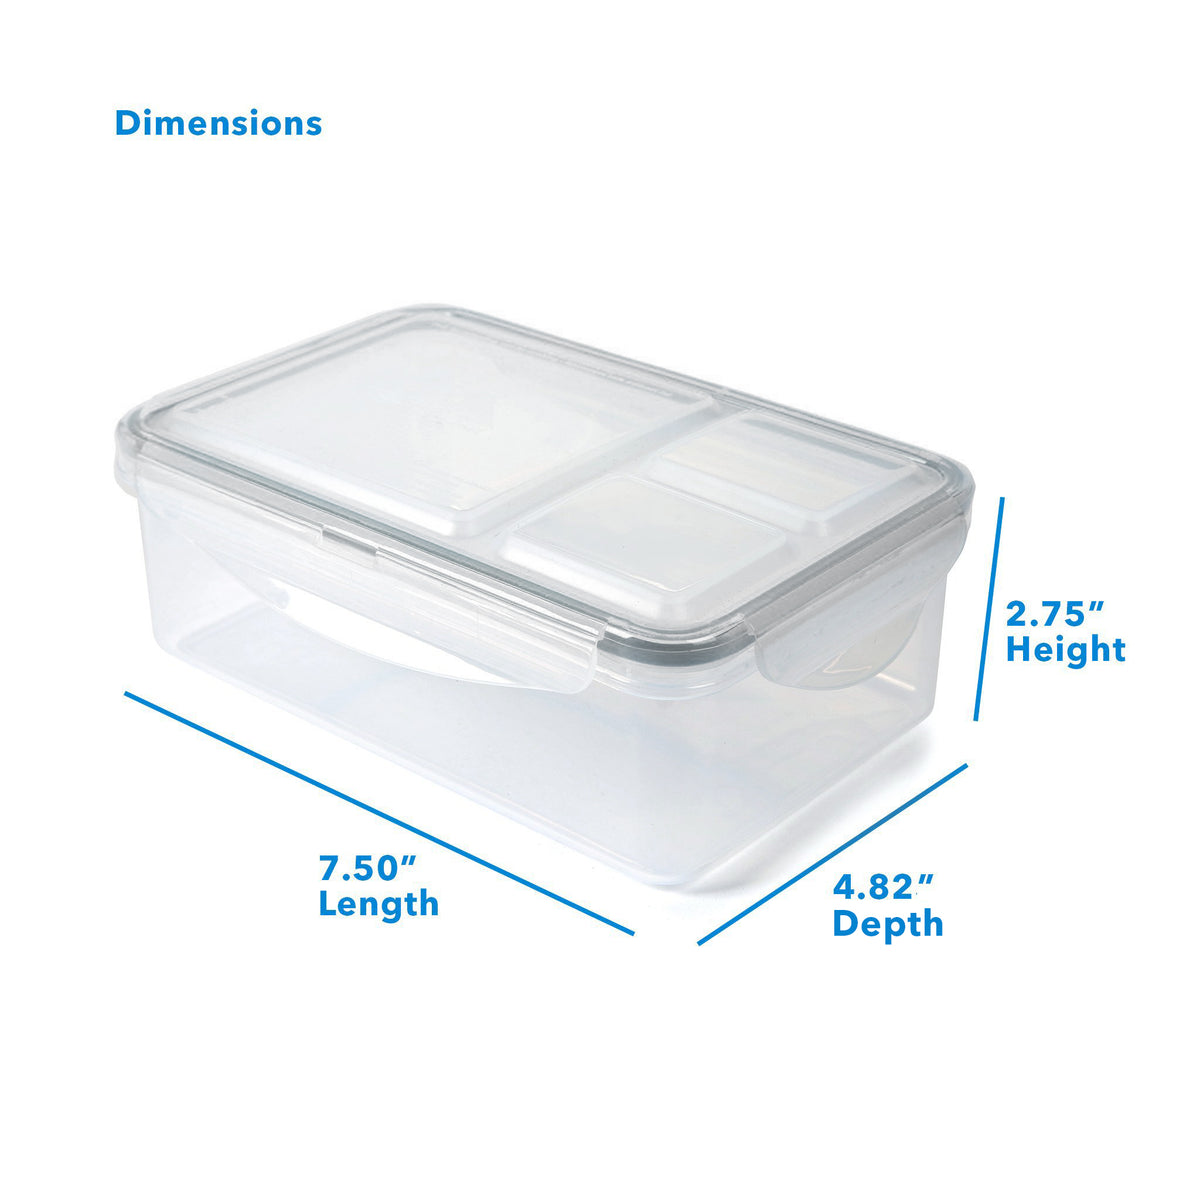 "Arctic Zone® High Performance Ultimate Secret Lunch Bucket - Gray - Container Dimensions: (L x D x H) 7.50"" x 4.82"" x 2.75"""